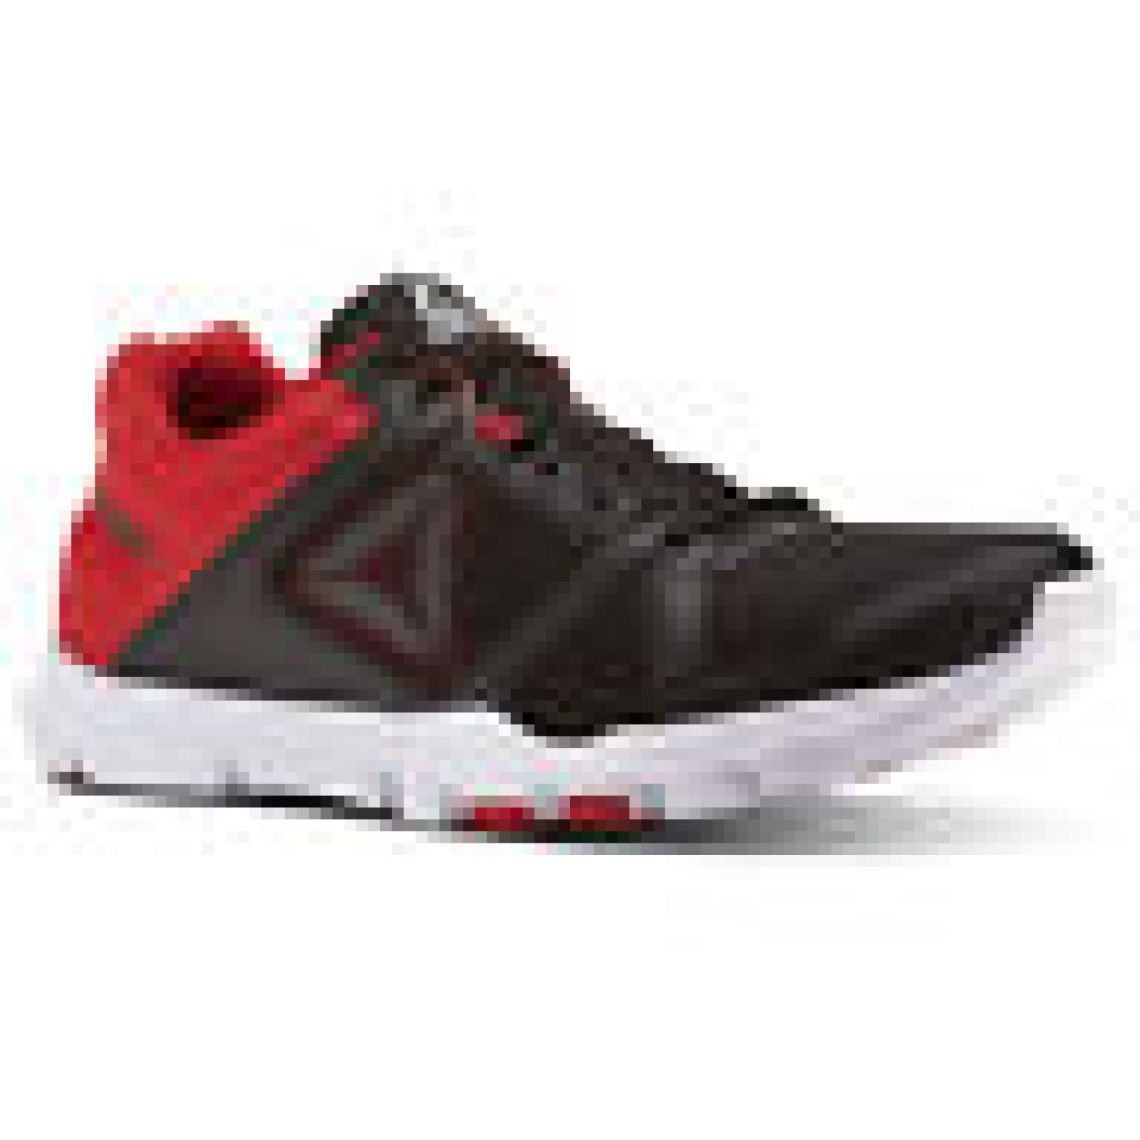 Reebok Men's Express Runner 2.0 Shoes | eBay